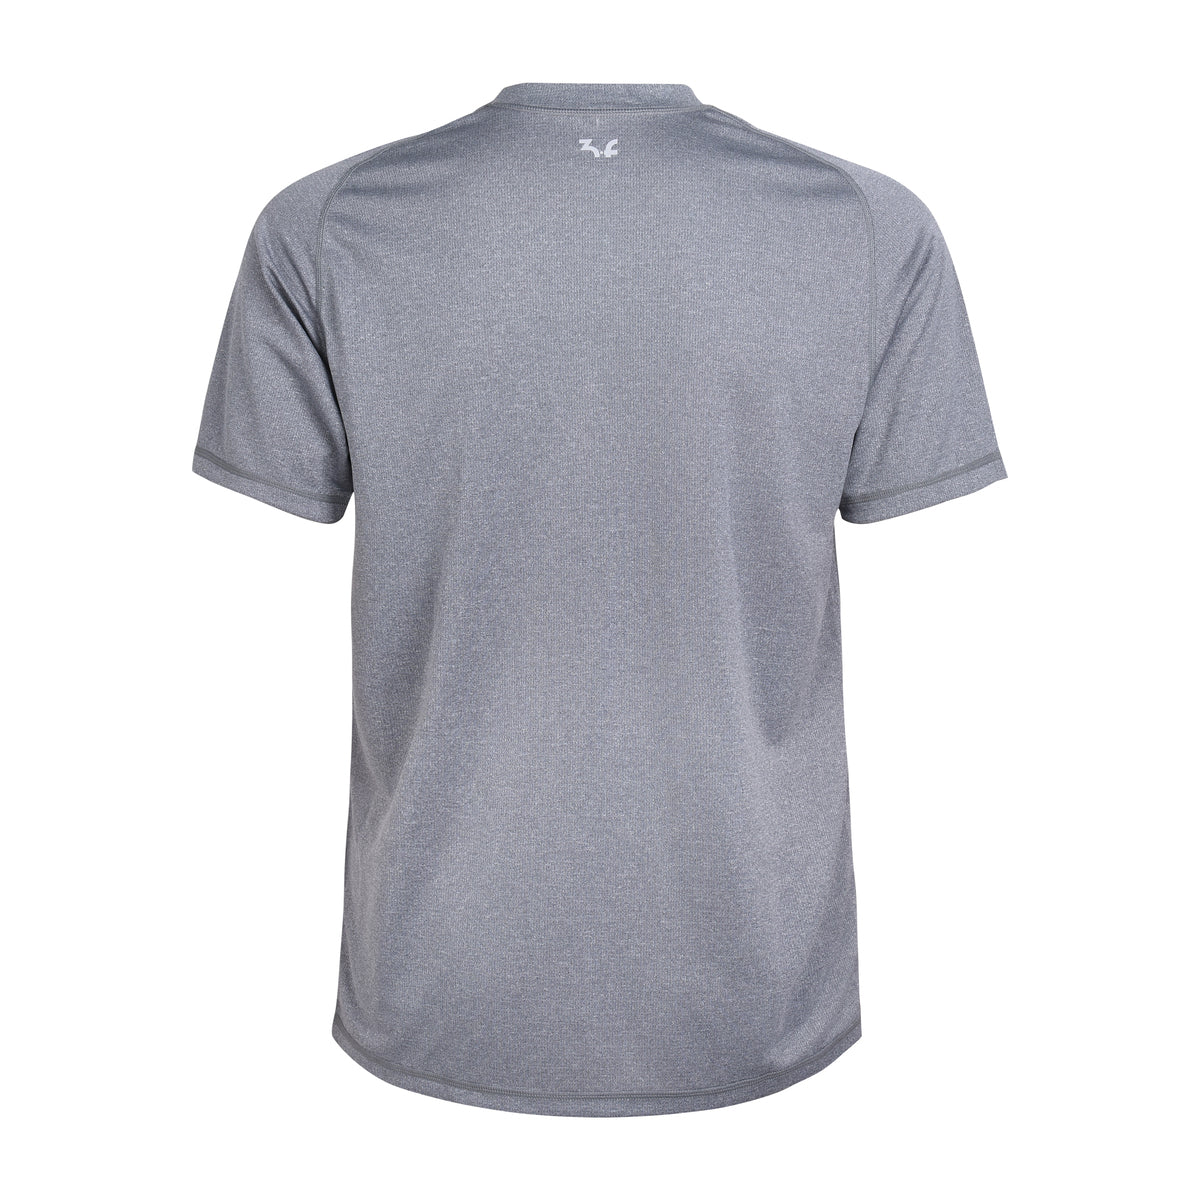 "Men's functional workout t-shirt "" Gus"" - IAM3F"